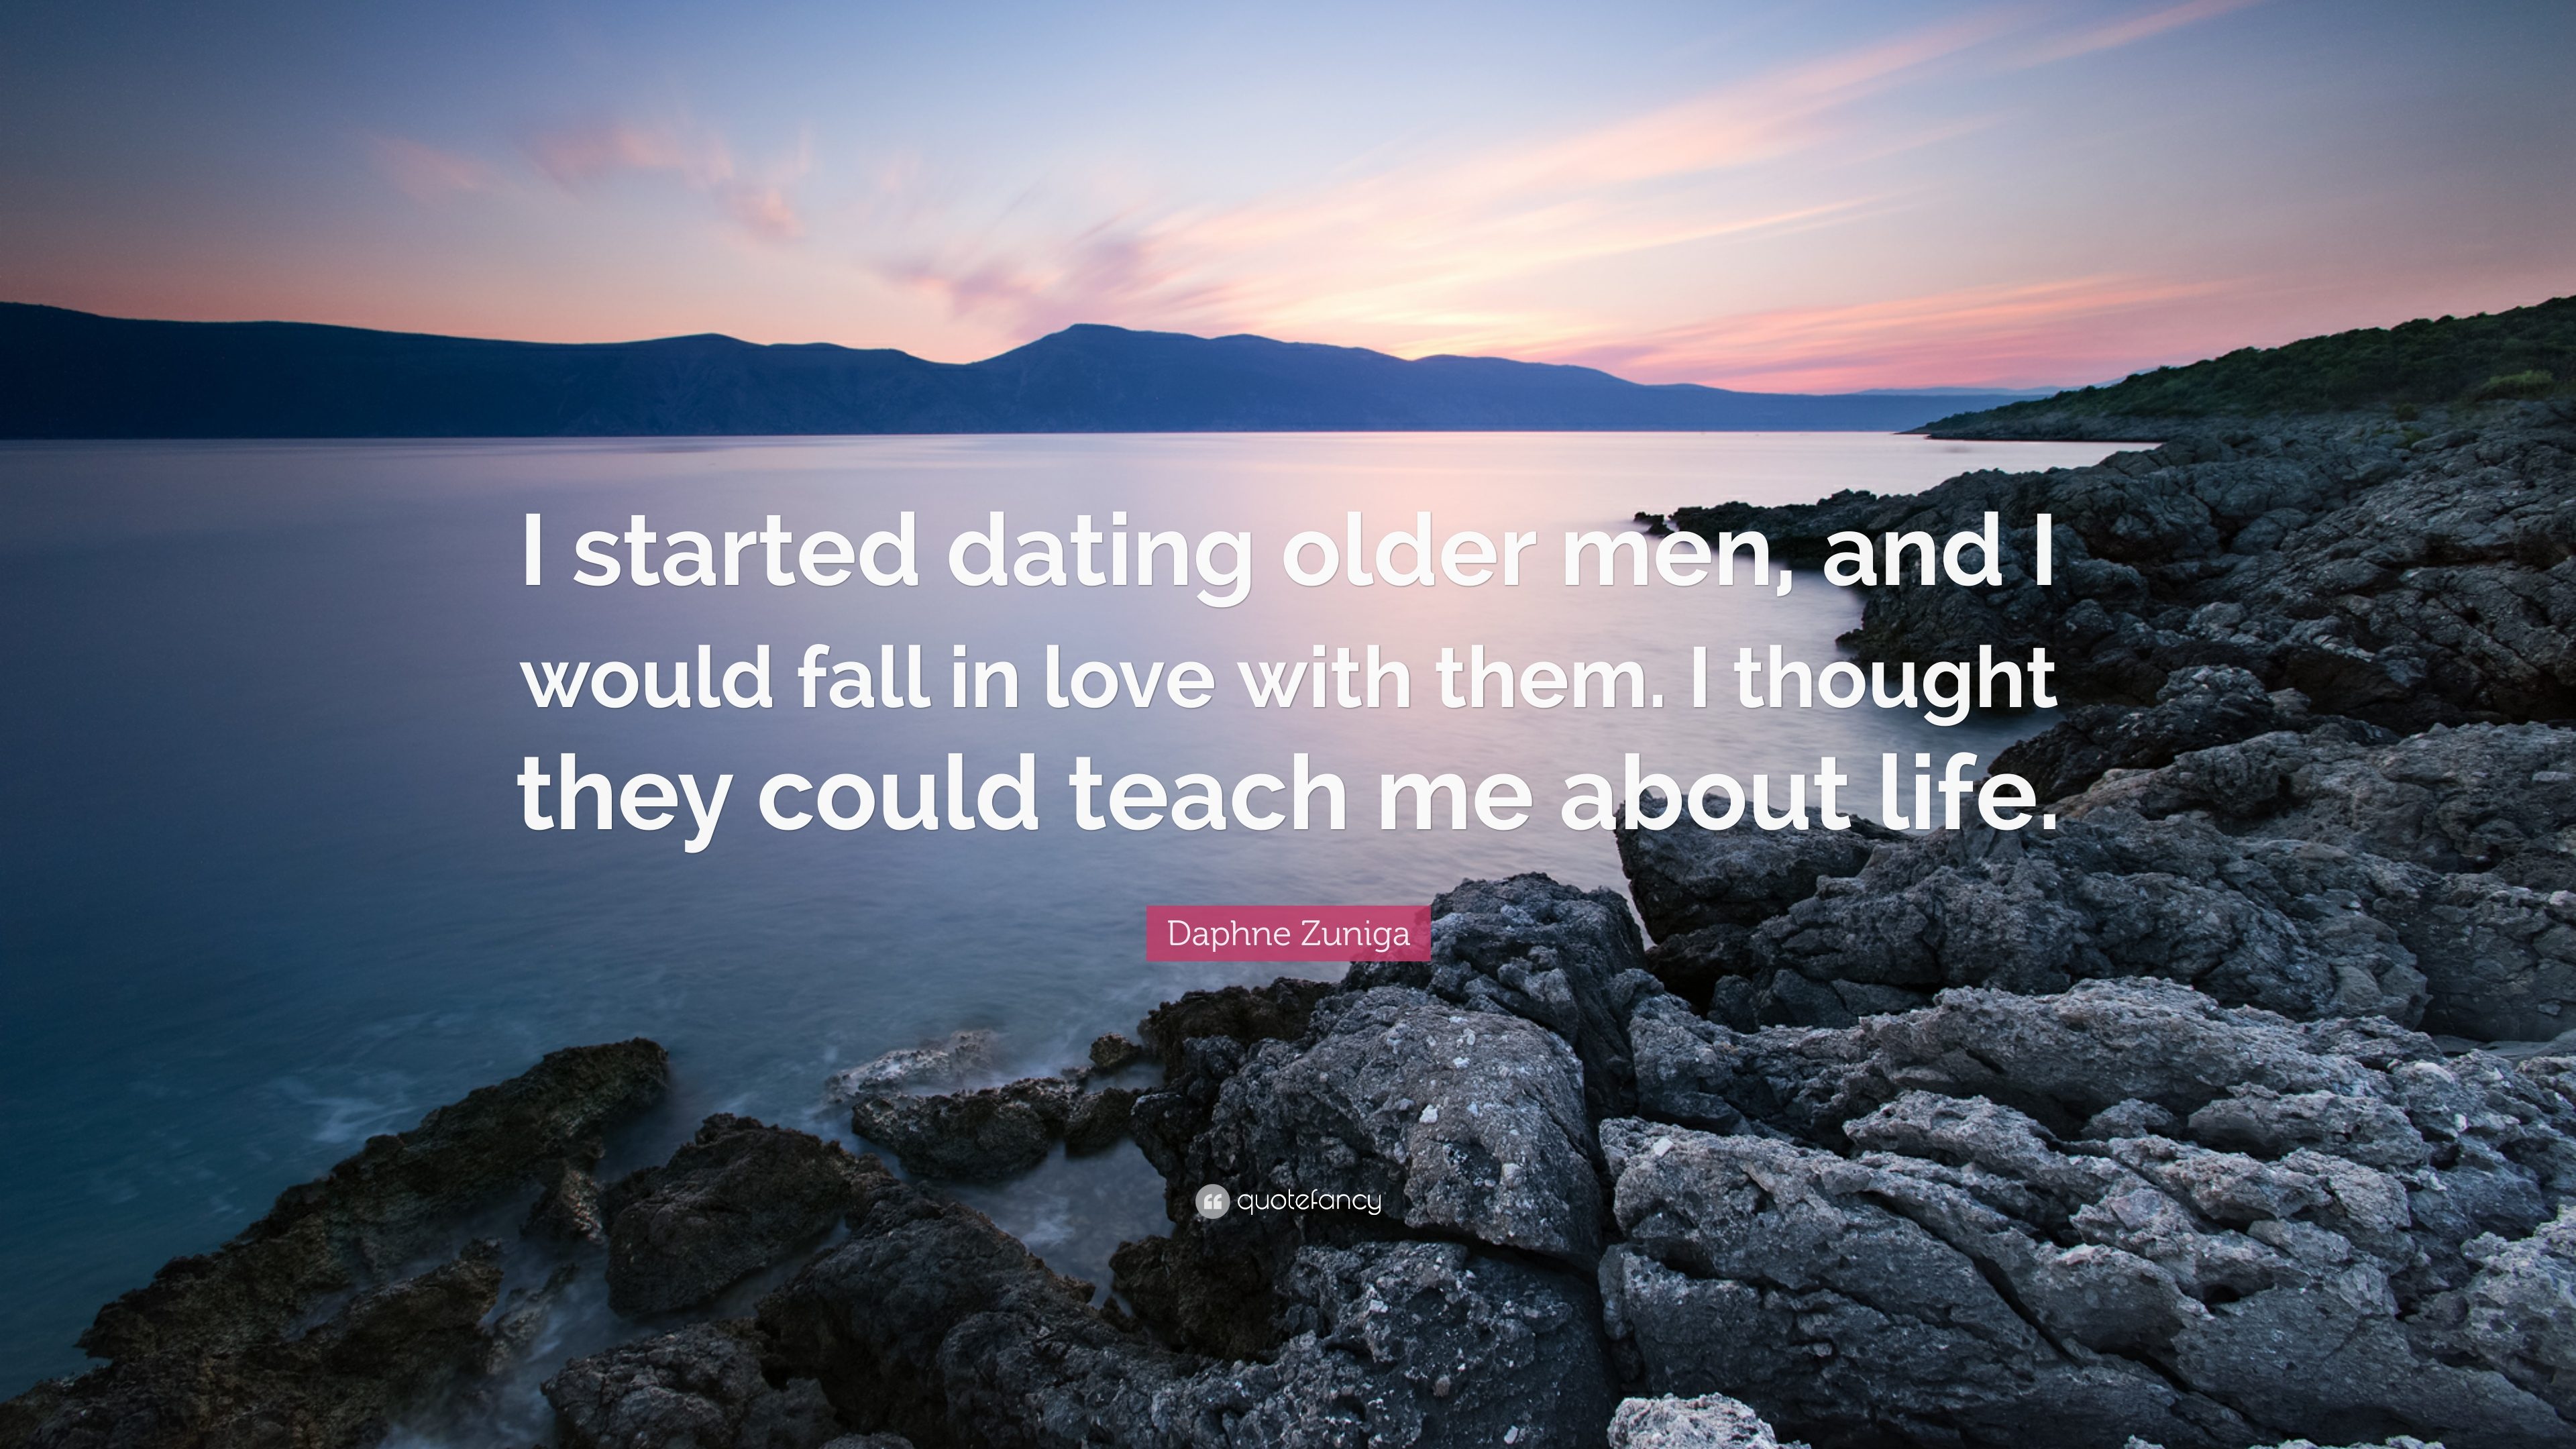 Older men who are dating usually fall in love